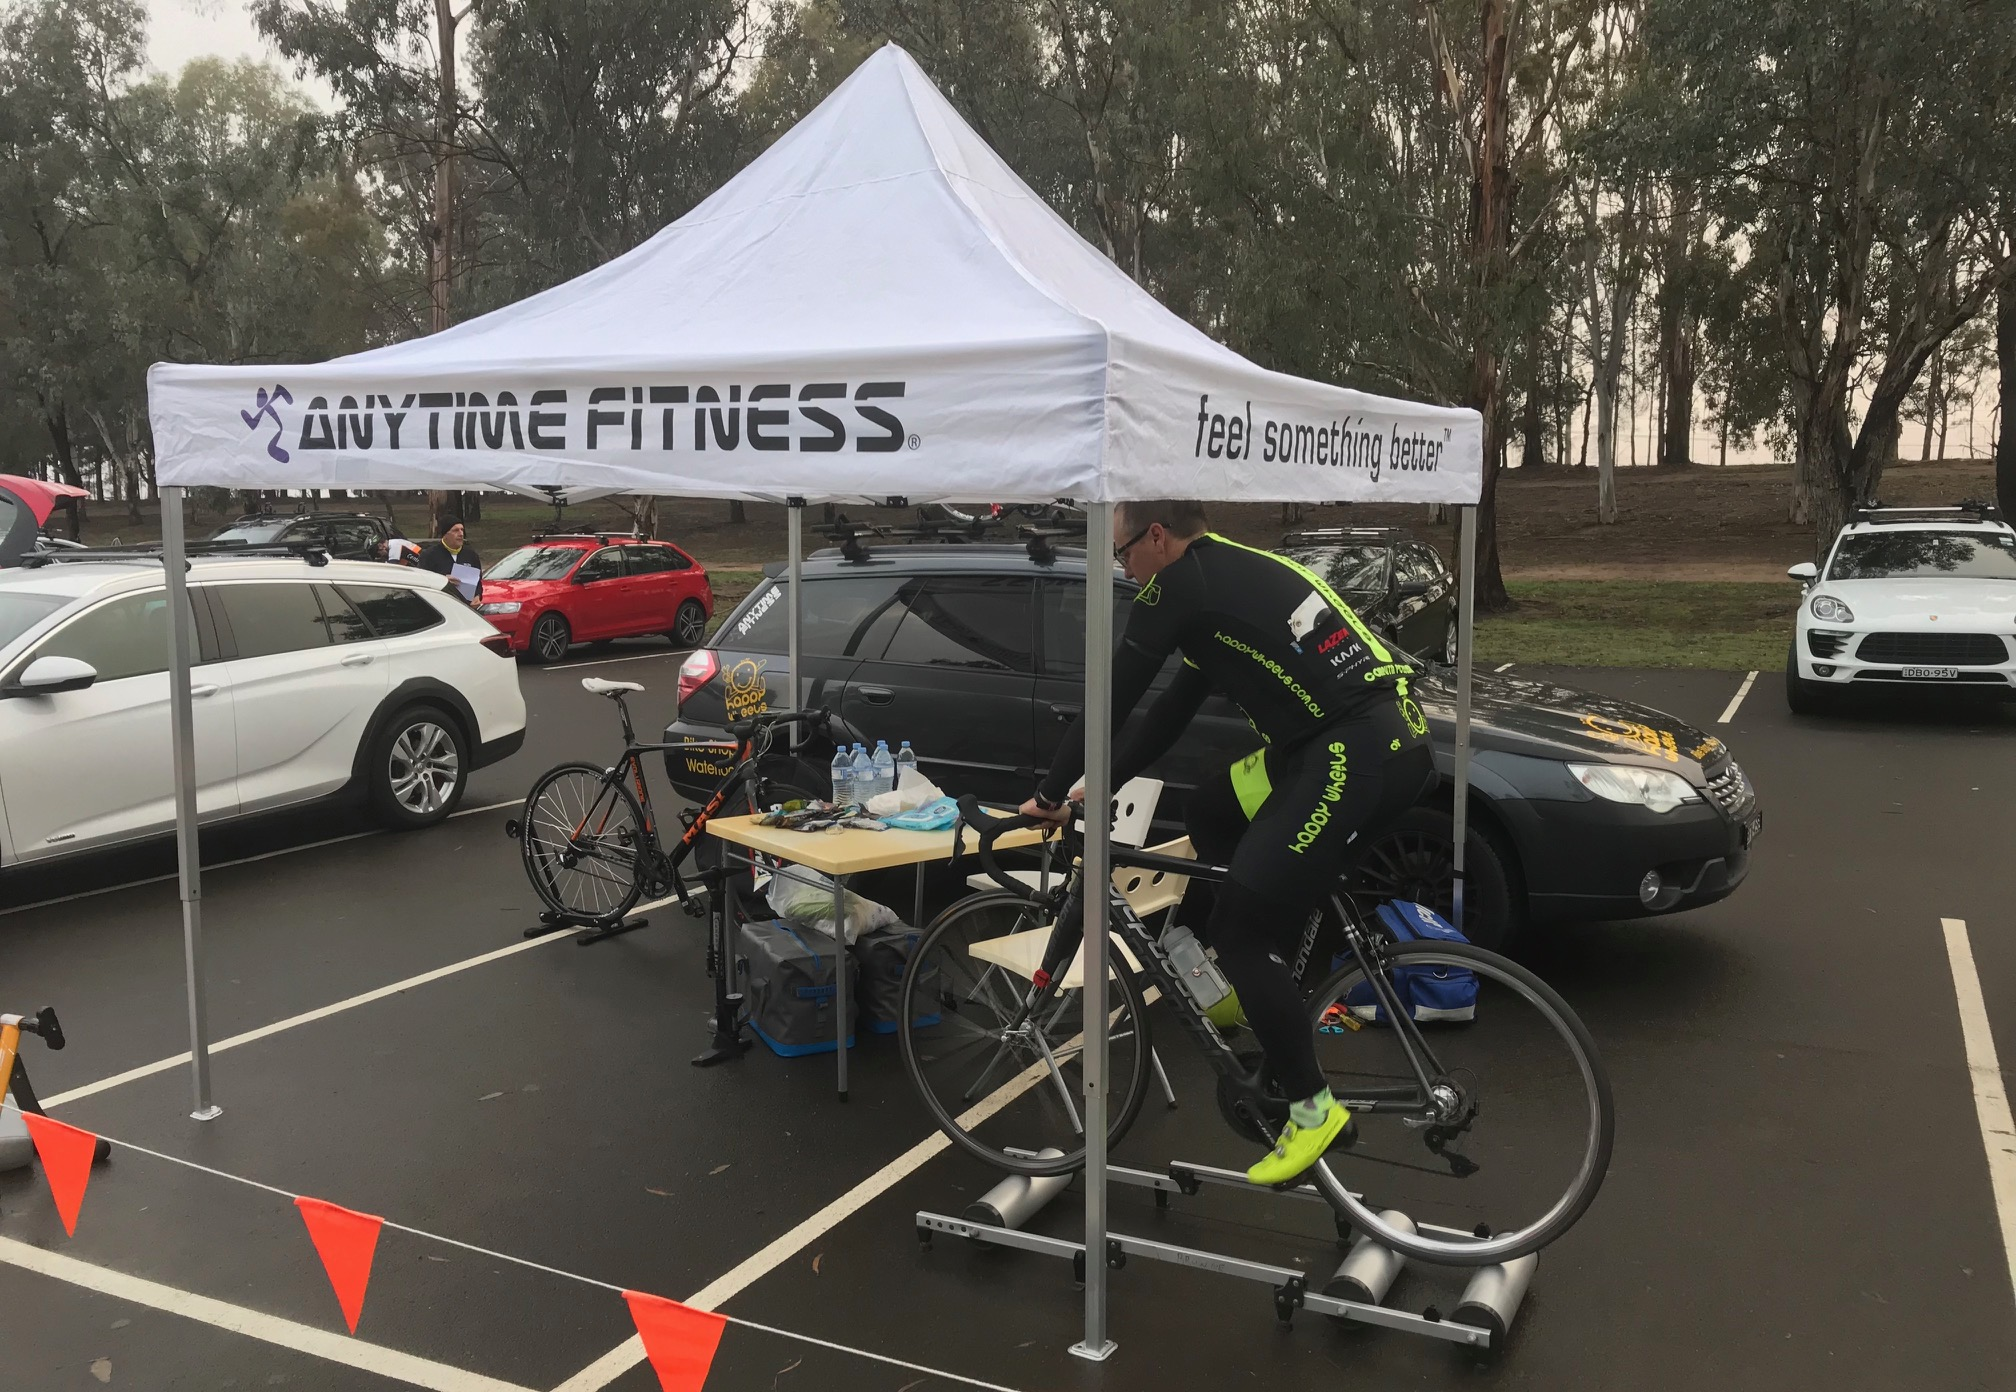 Metropolitan Championships @ Penrith Lakes @ 6 July - Many thanks to Karl Hoad and Anytime Fitness for providing the new AF gazebo at Penrith Lakes with Davide  van der  Browne in session for the Ghent 6 Day in November on the rollers